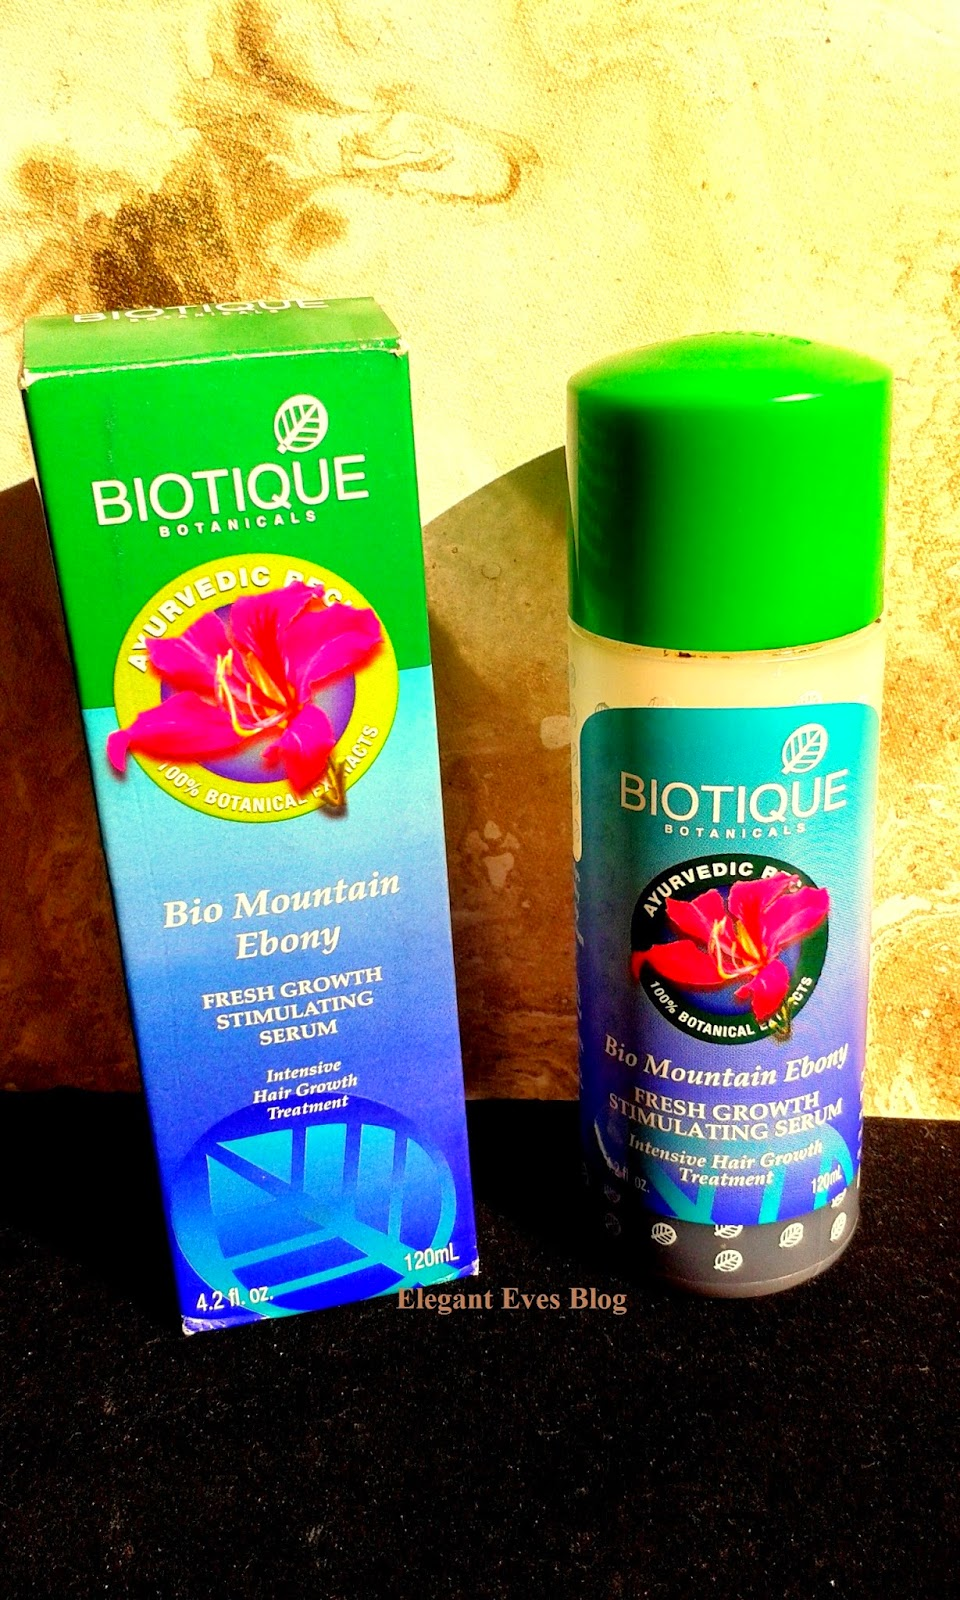 Biotique Bio Mountain Ebony Hair Serum